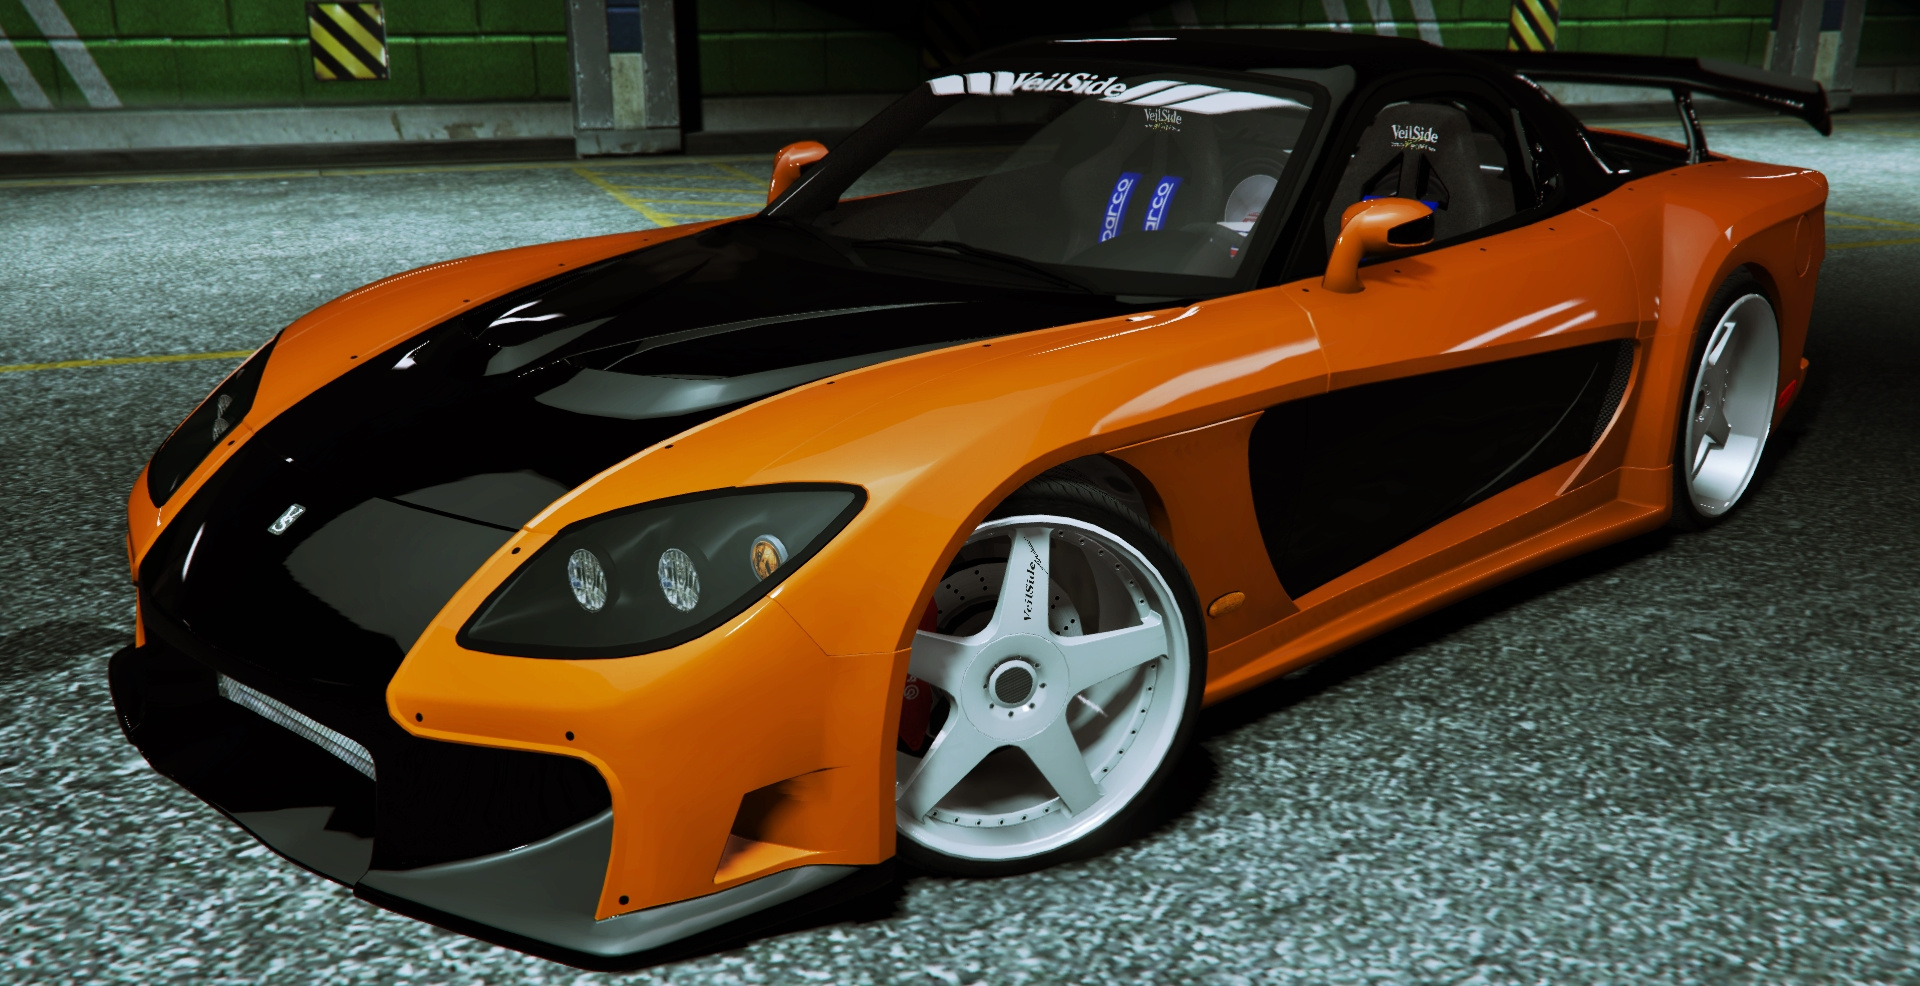 fnf tokyo drift 1997 mazda rx 7 veilside fortune gta5. Black Bedroom Furniture Sets. Home Design Ideas